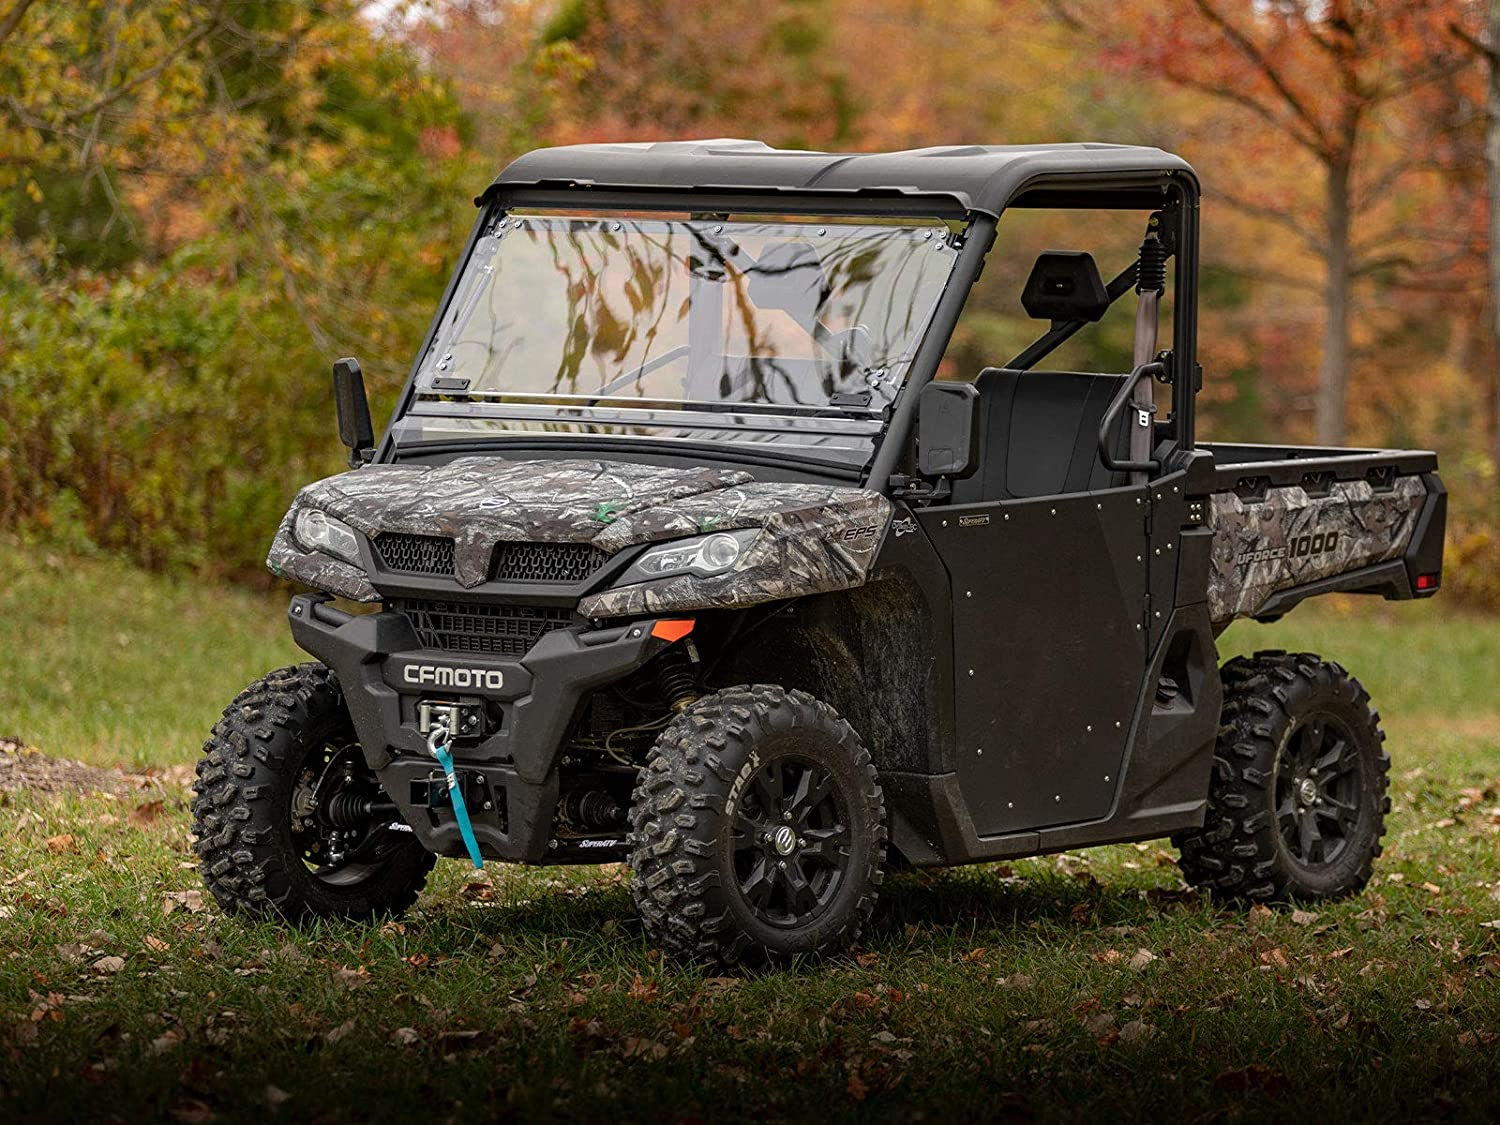 SuperATV Heavy Duty Scratch Resistant Flip Windshield for CFMOTO UForce 1000 2019+ Designed for Year-round Riding!